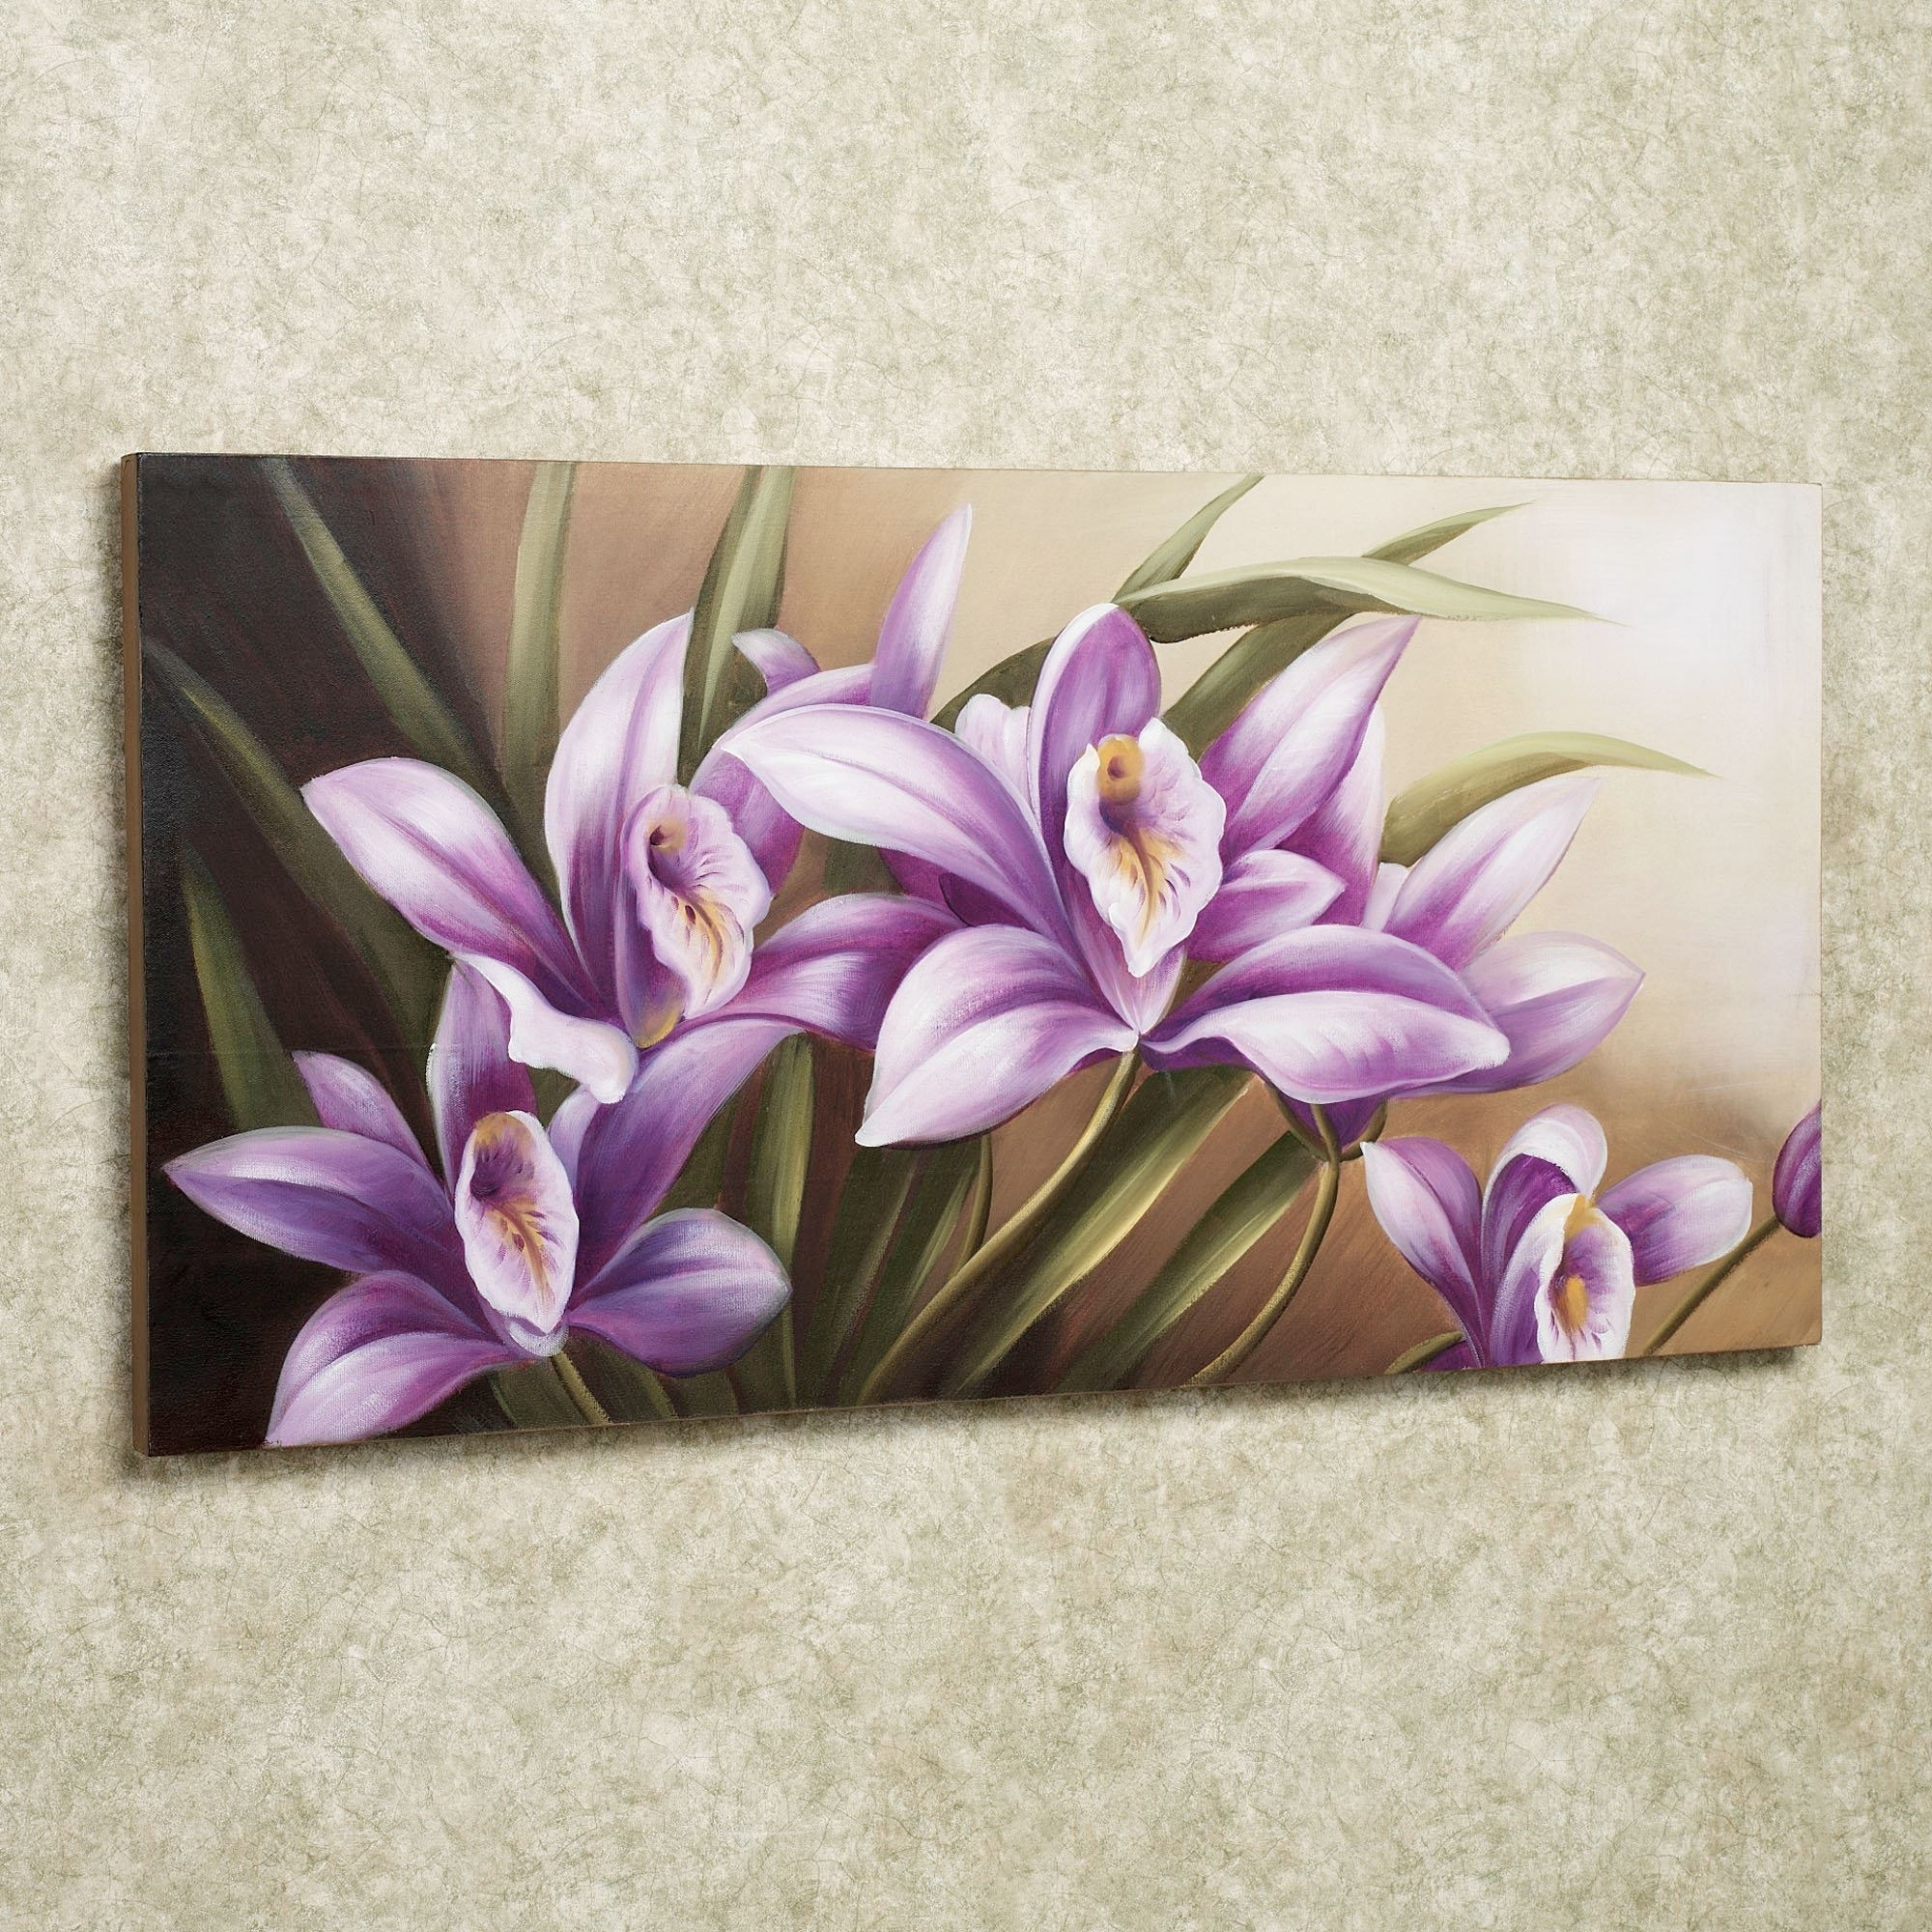 Wild Orchid Handpainted Floral Canvas Wall Art Regarding Most Popular Orchid Canvas Wall Art (View 4 of 15)